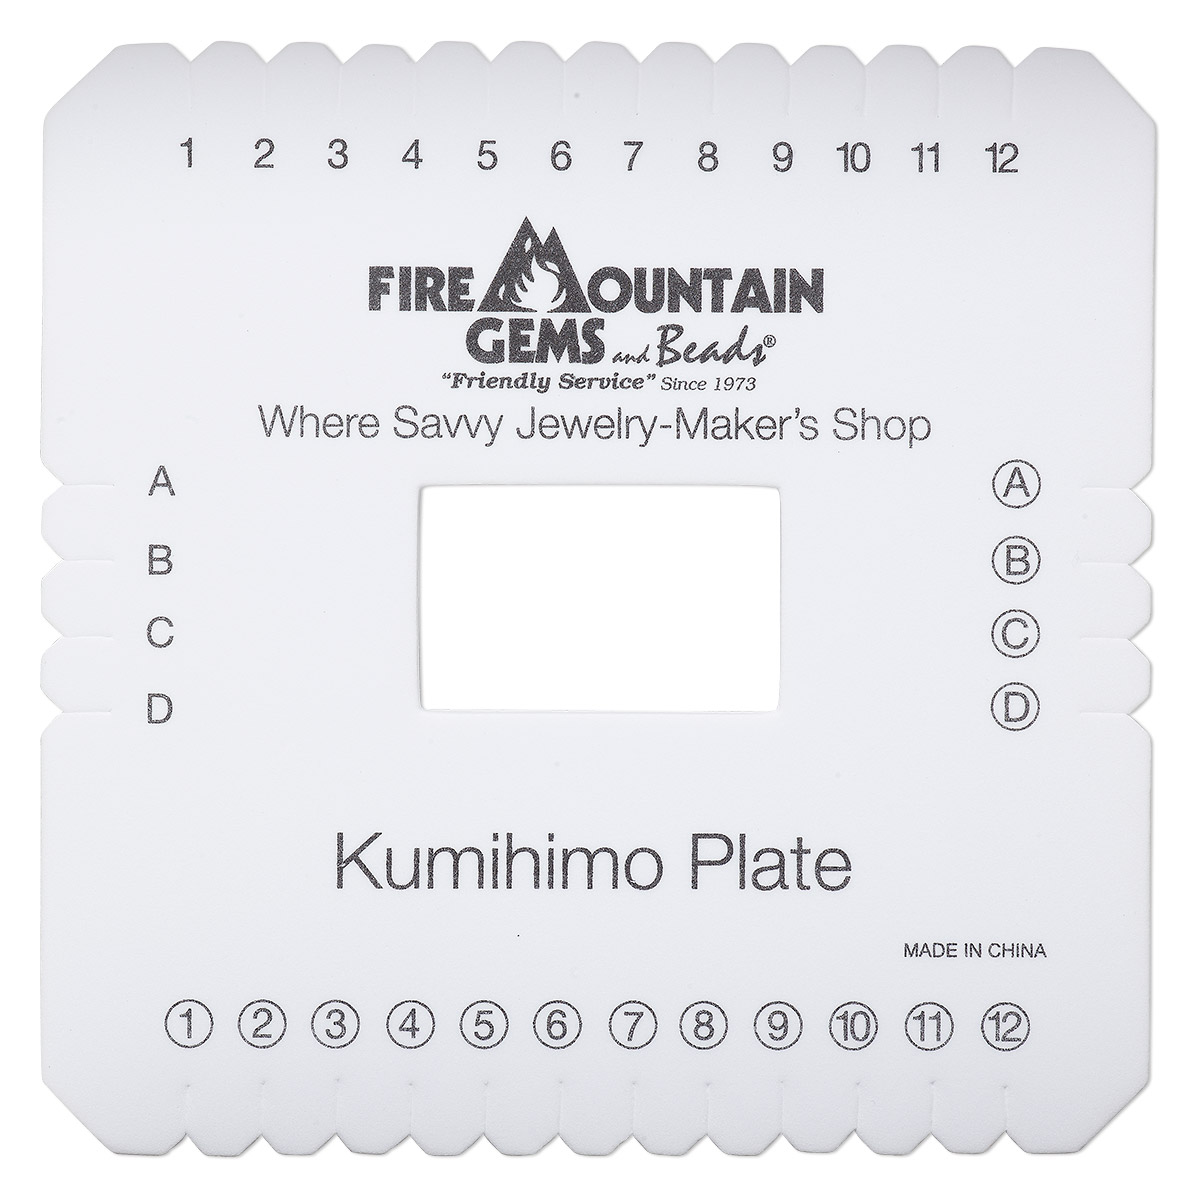 Kumihimo plate, EVA foam, white and black, 6x6-inch square with 2 x